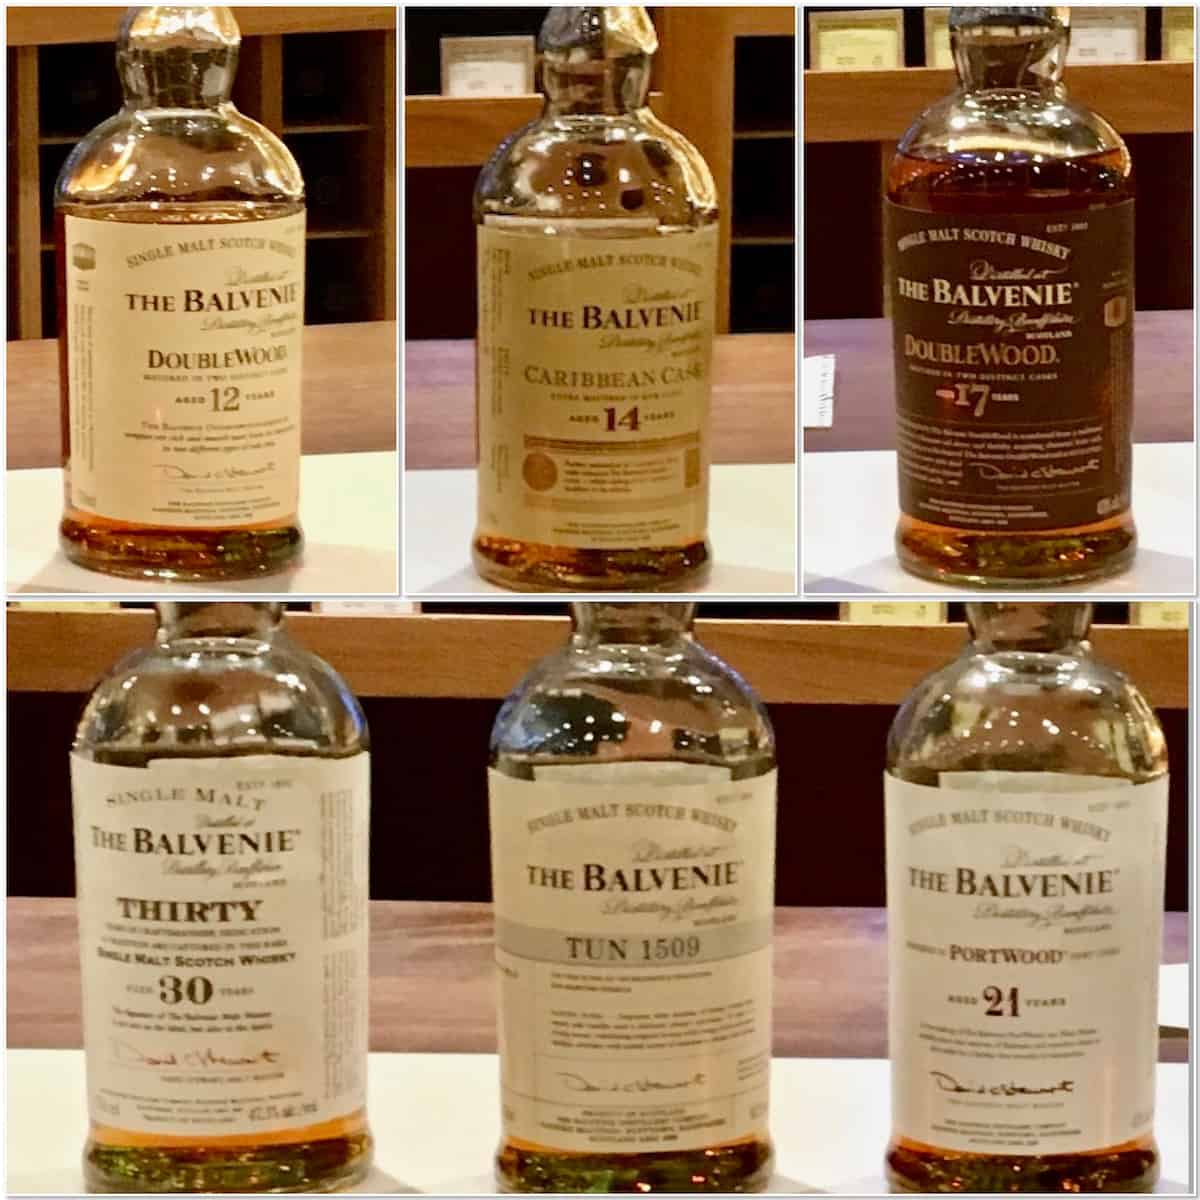 Collage of the Balvenie lineup bottles on a counter.